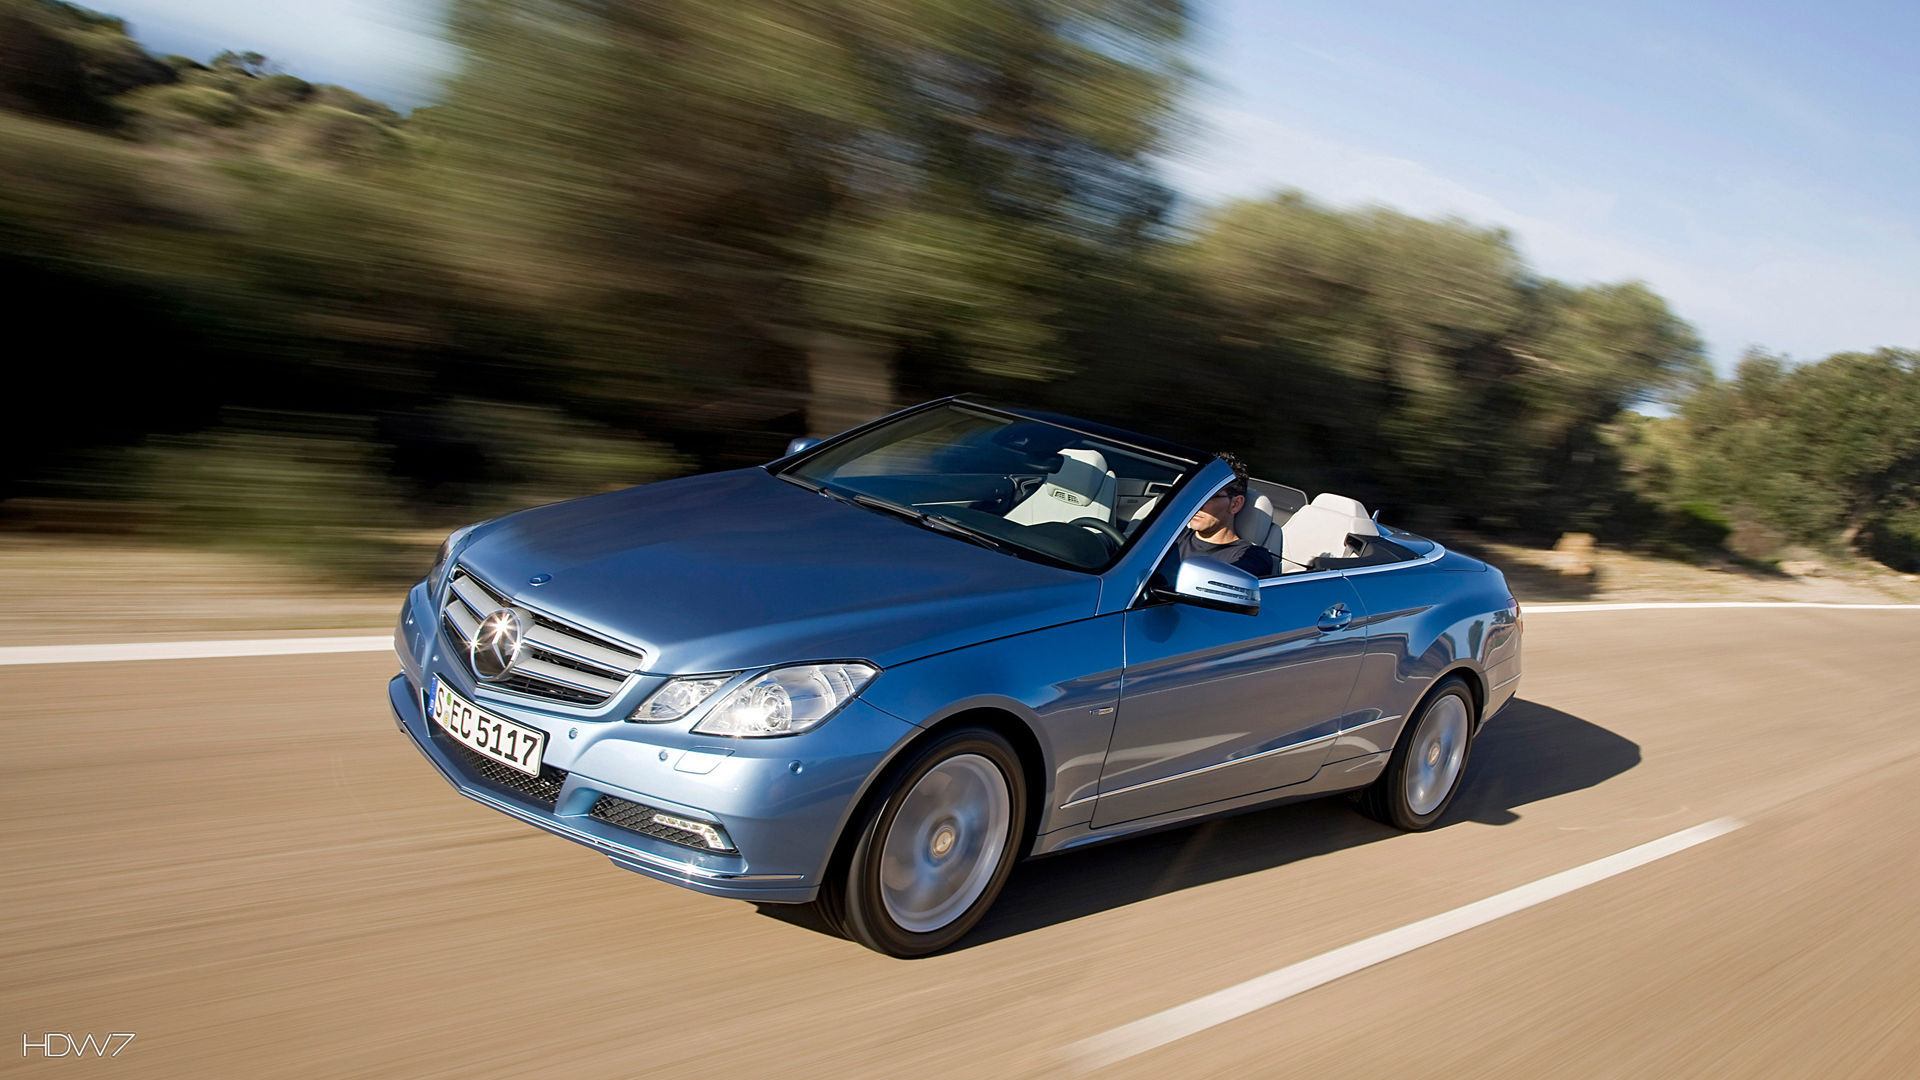 Mercedes benz e250 cdi cabriolet 2010 car hd wallpaper for Burton bmw mercedes benz